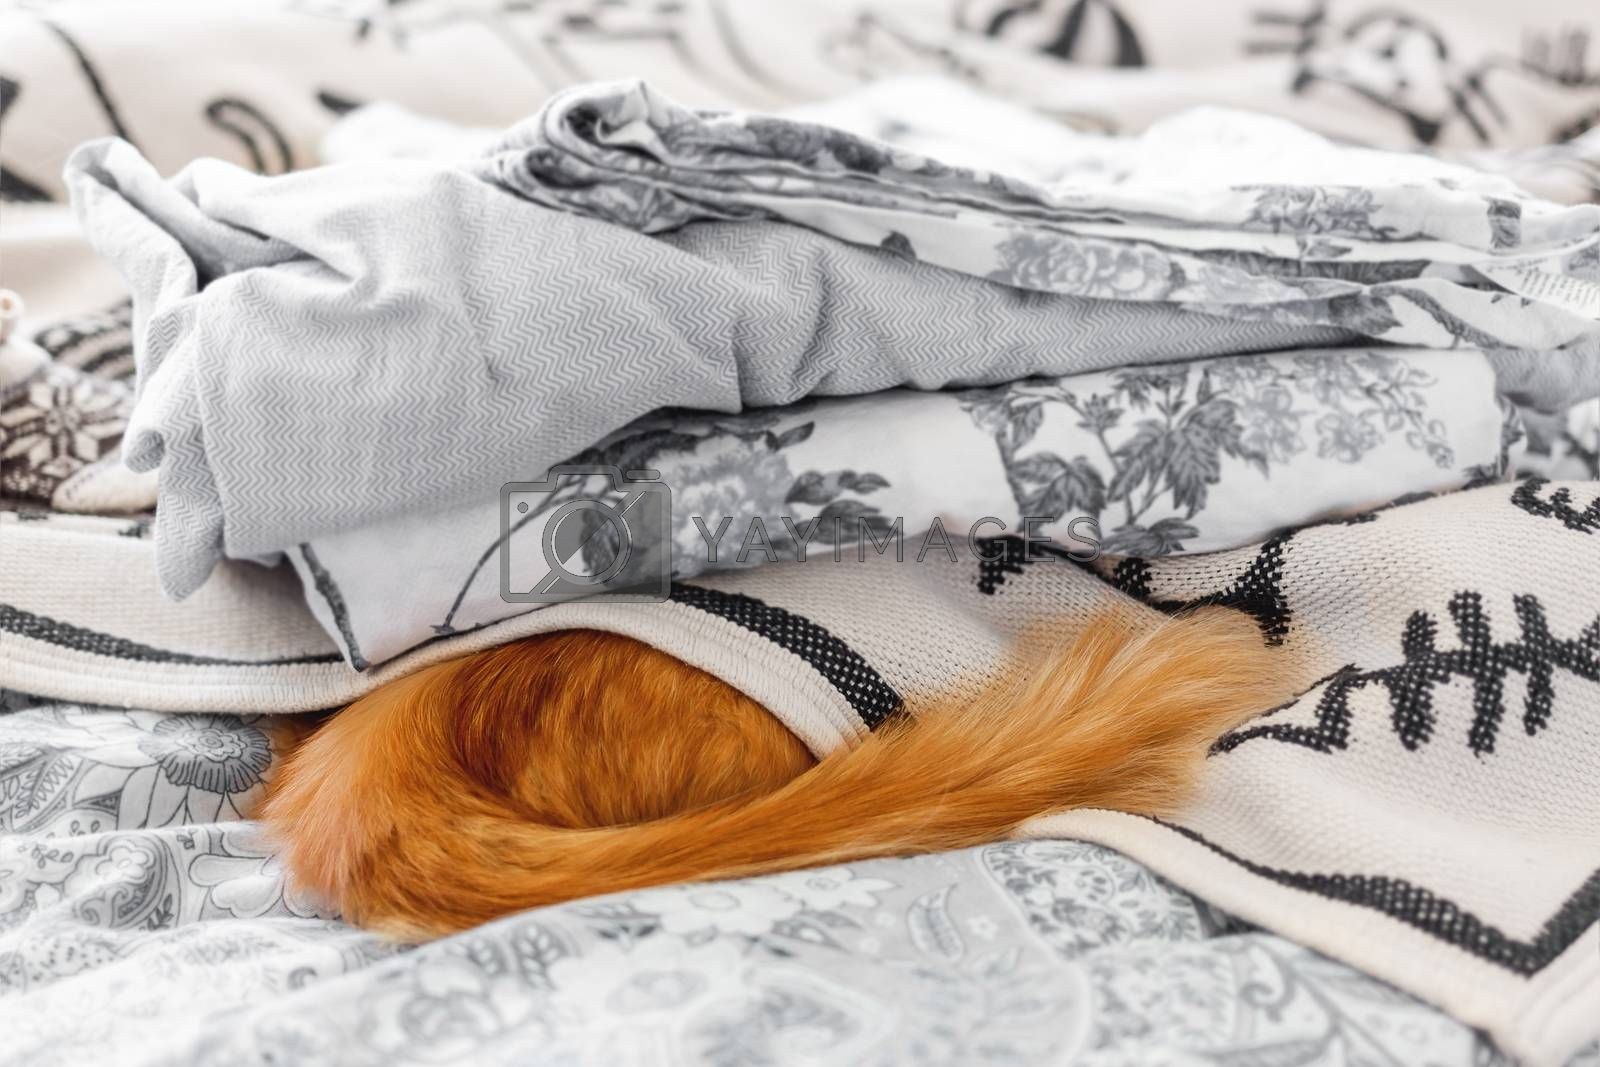 Cute ginger cat hides in bed. Fluffy pet sleeps under blanket, only furry tail is visible. Cozy morning bedtime in cozy home.